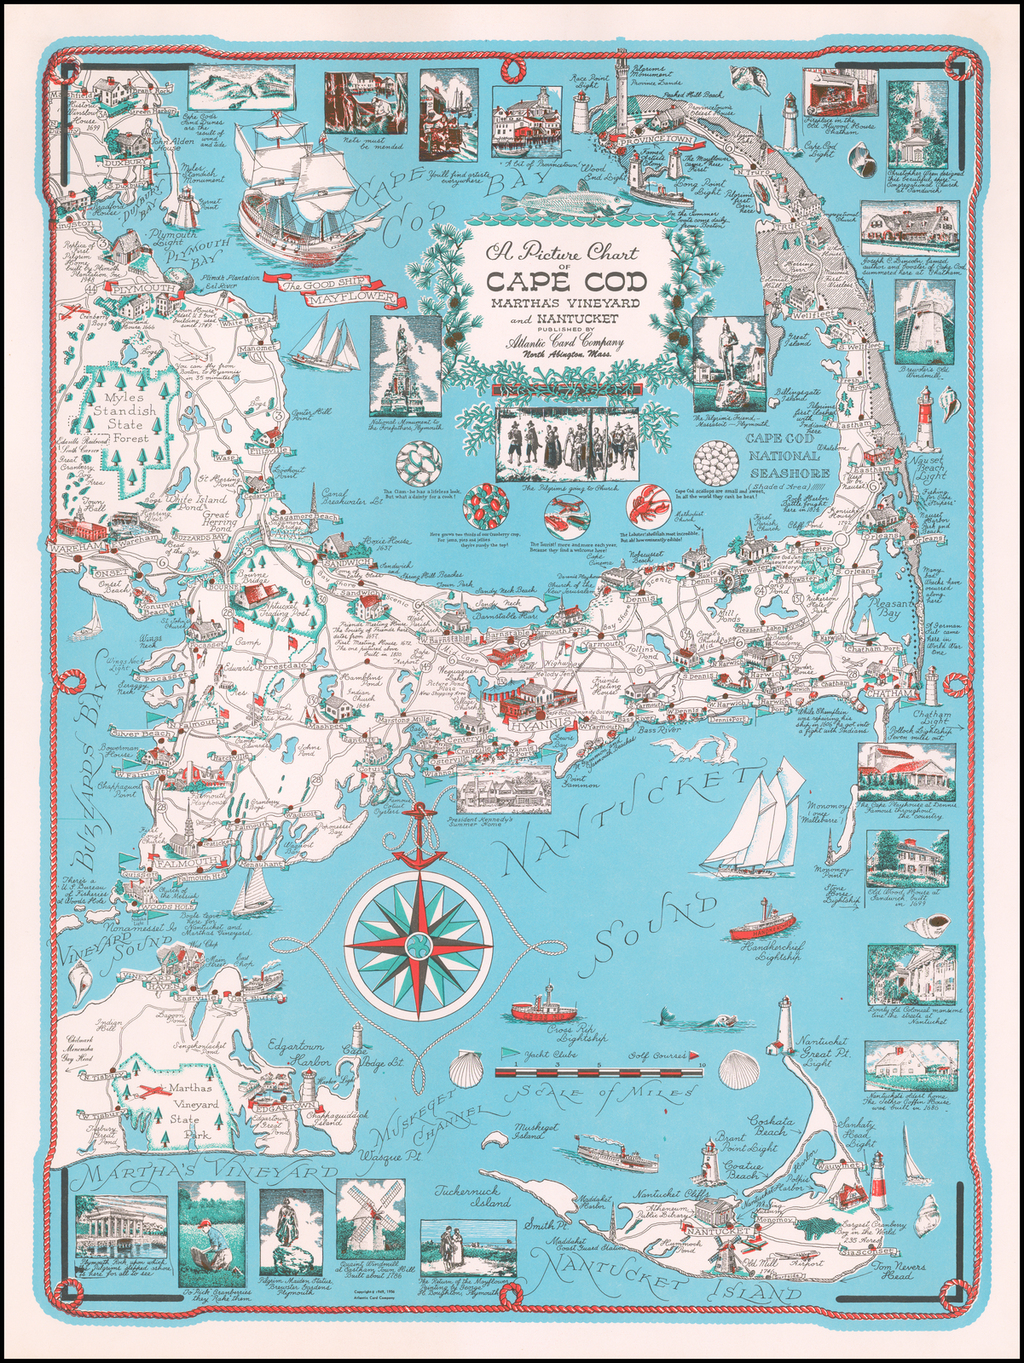 A Picture Chart of Cape Cod Marthas Vineyard and Nantucket . . .  By Ernest Dudley Chase